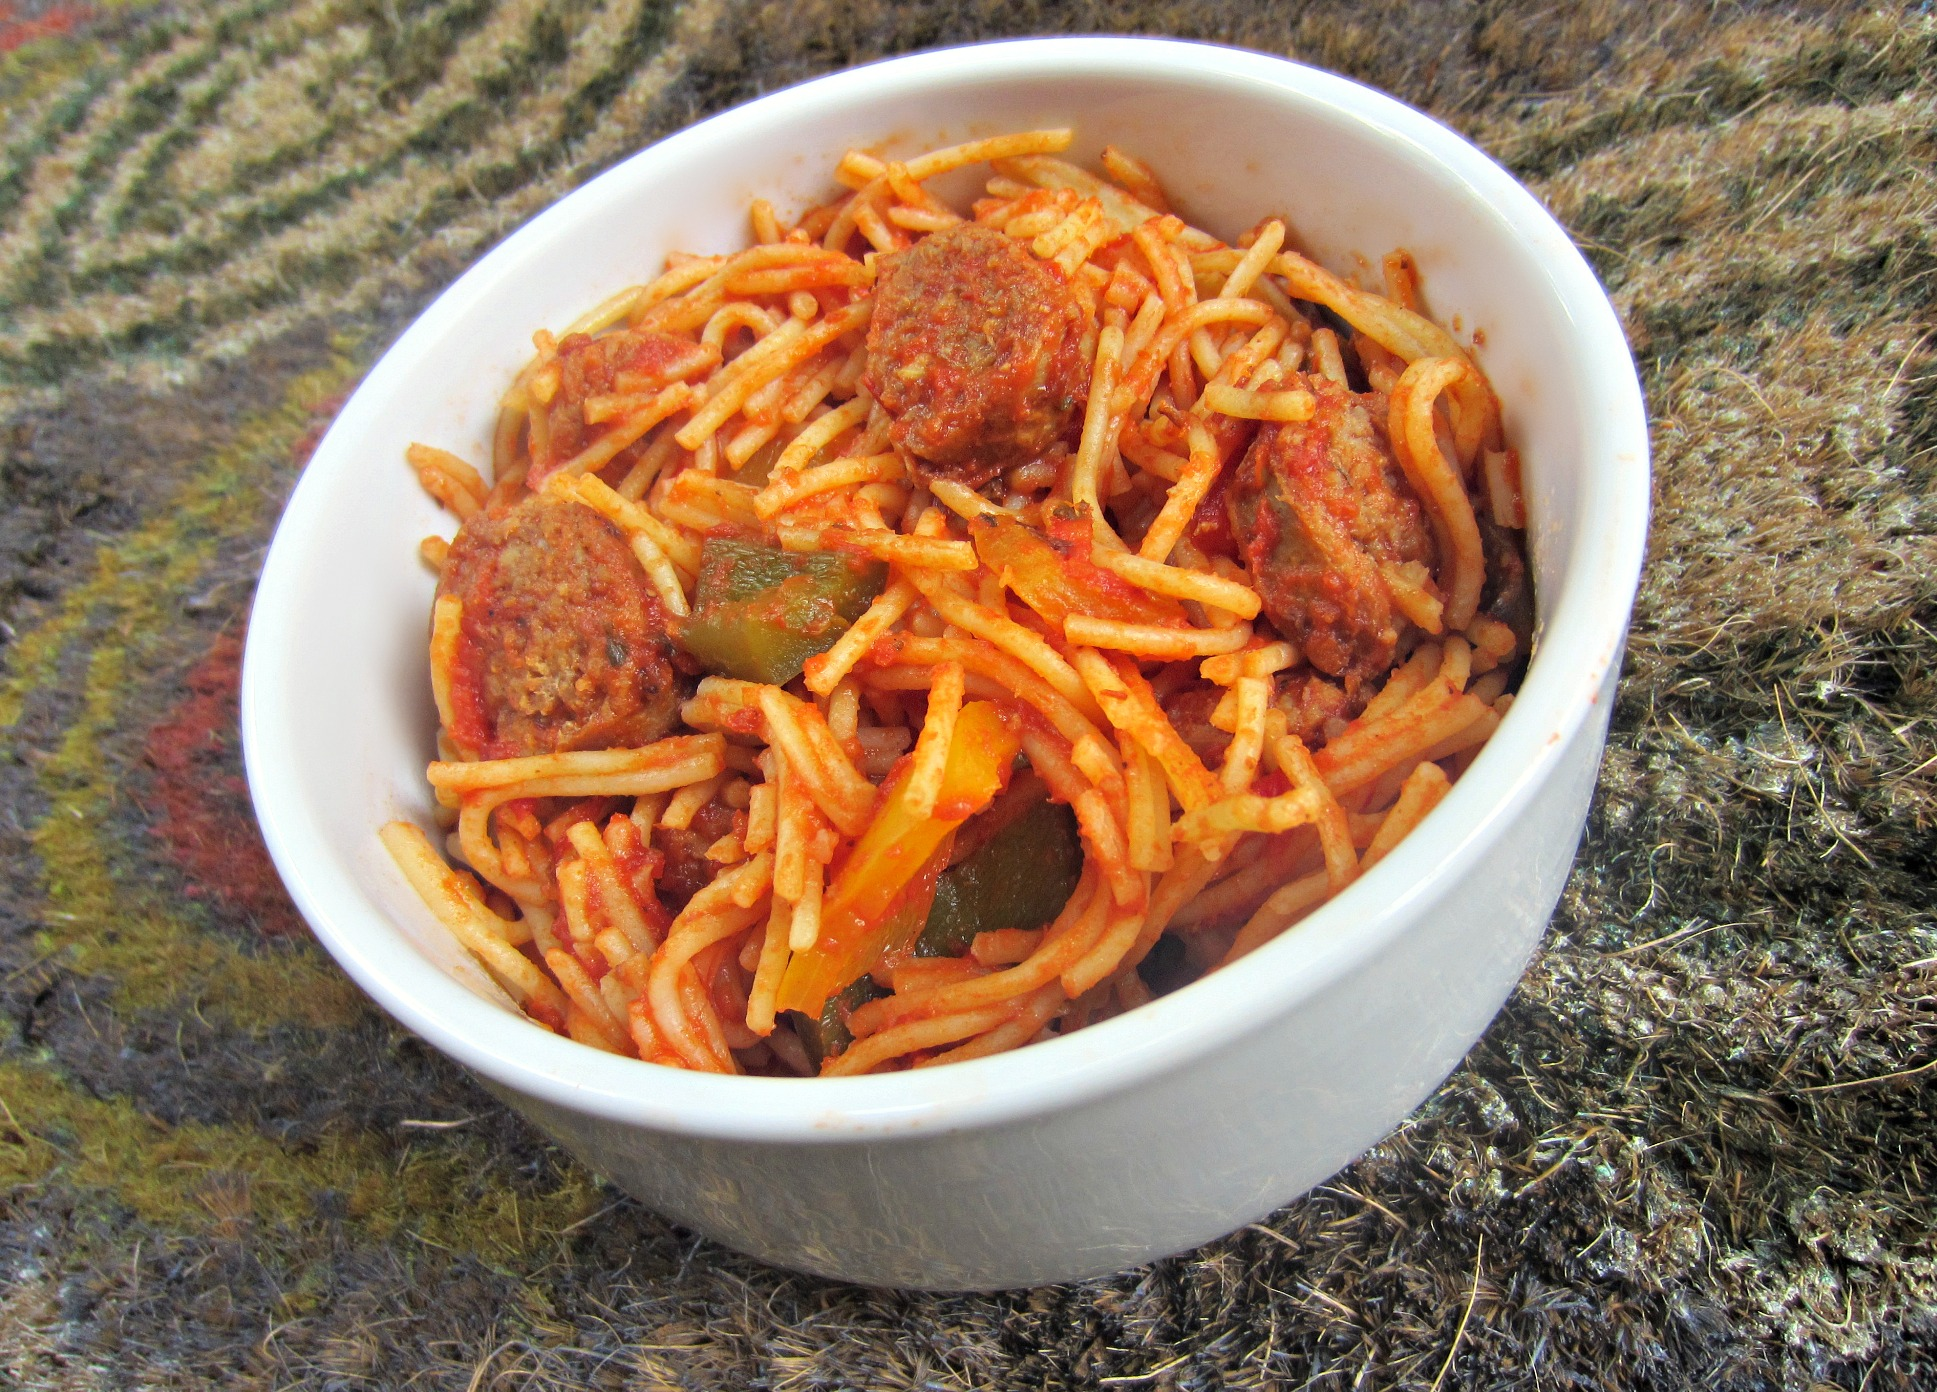 turkey italian sausage and gluten free pasta